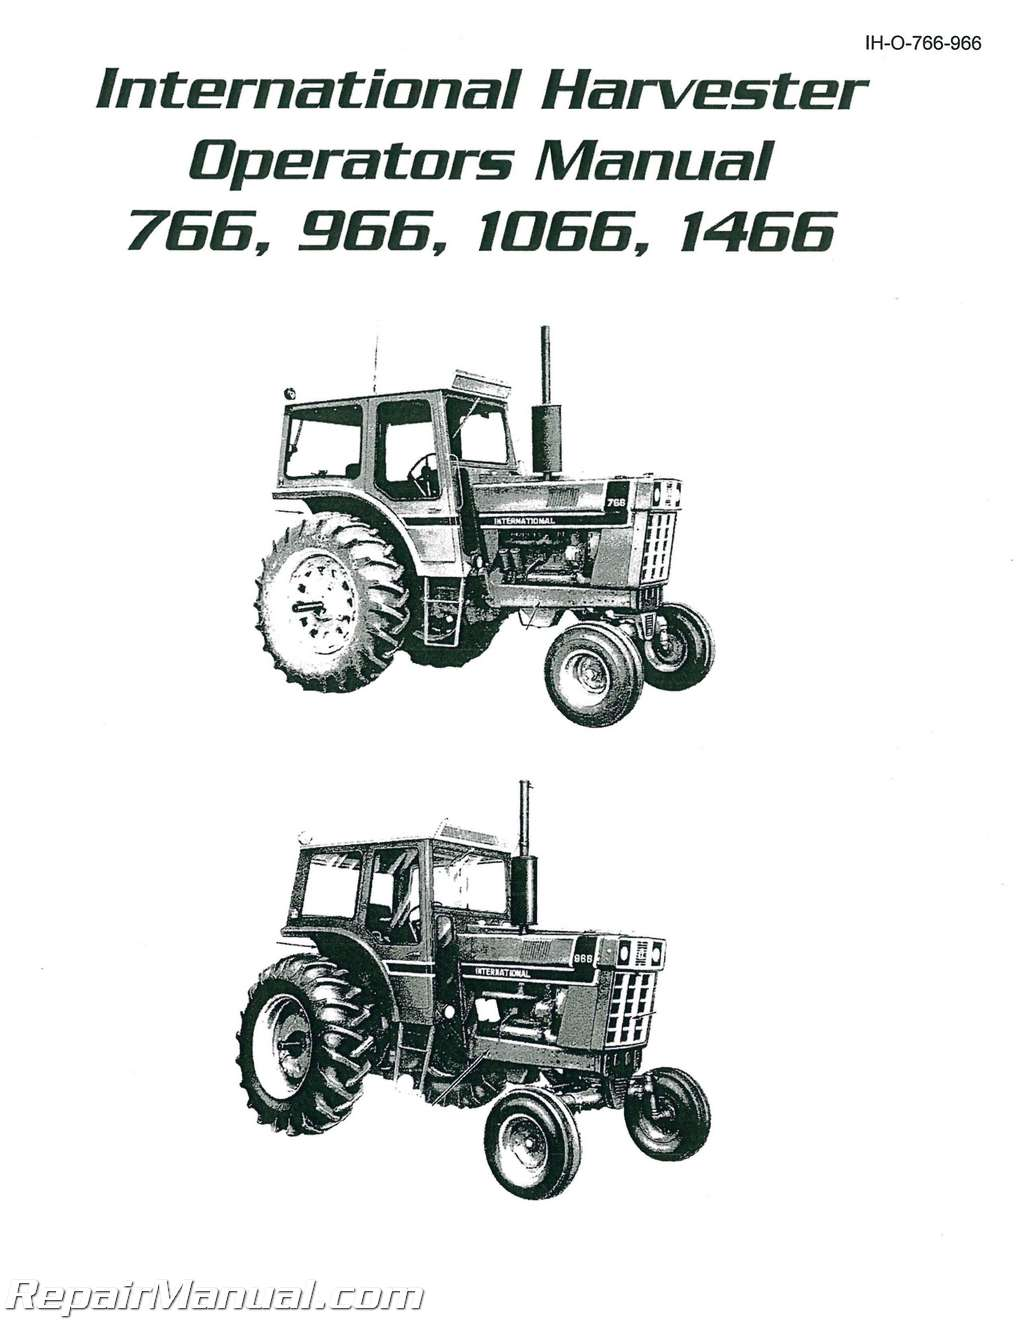 Contemporary Farmall M Wiring Diagram Images - Wiring Diagram Ideas ...